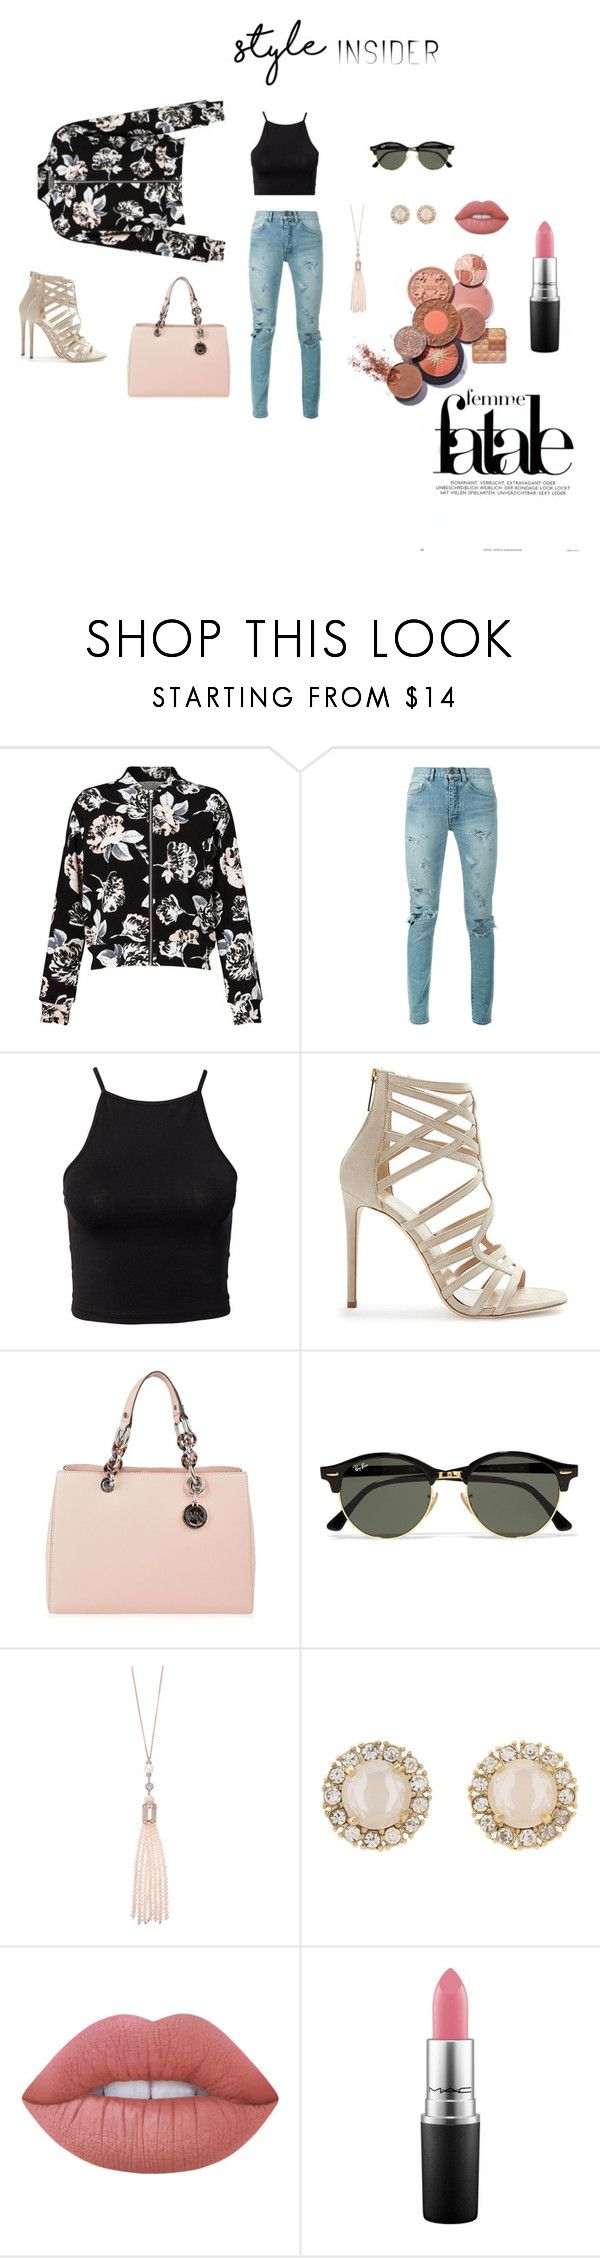 best style images on pinterest casual wear for women and